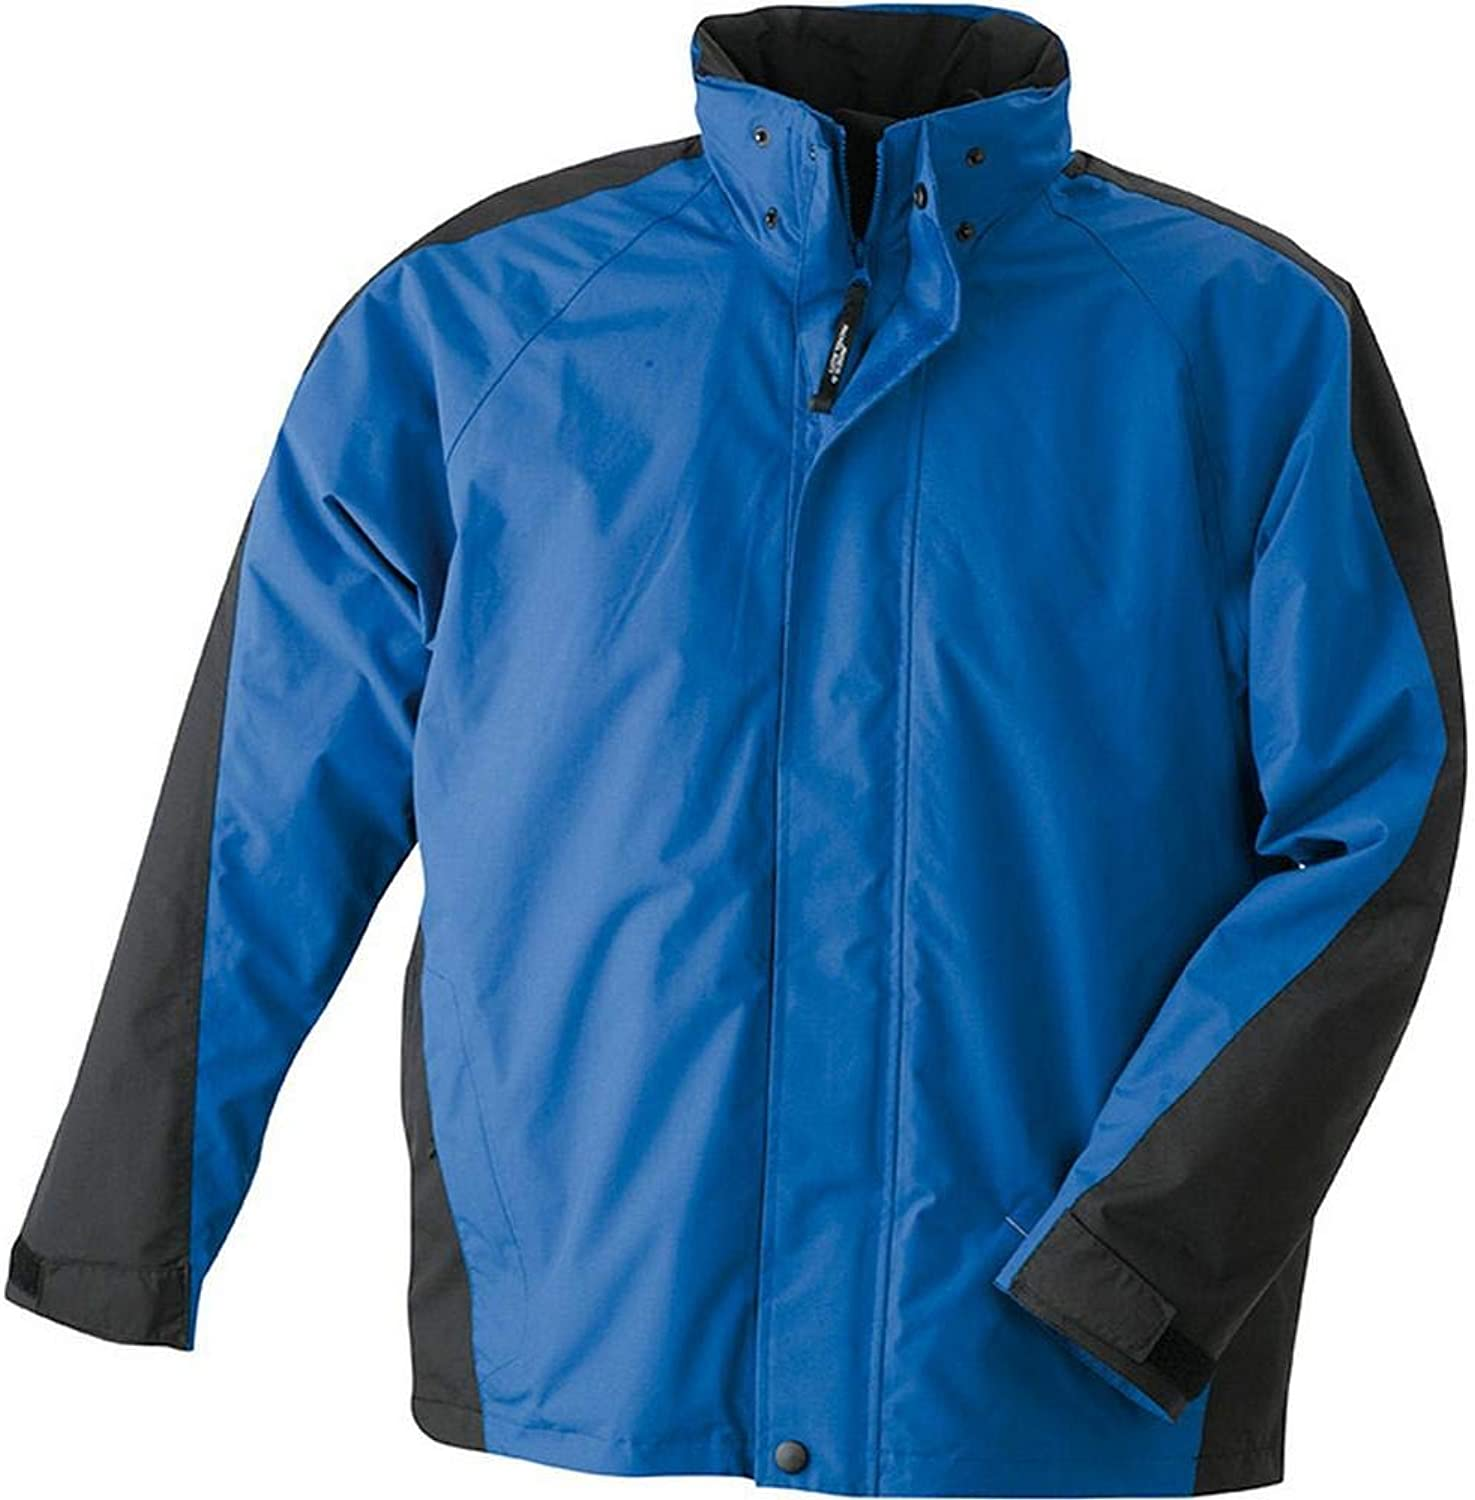 James and Nicholson Mens Two-in-One Jacket